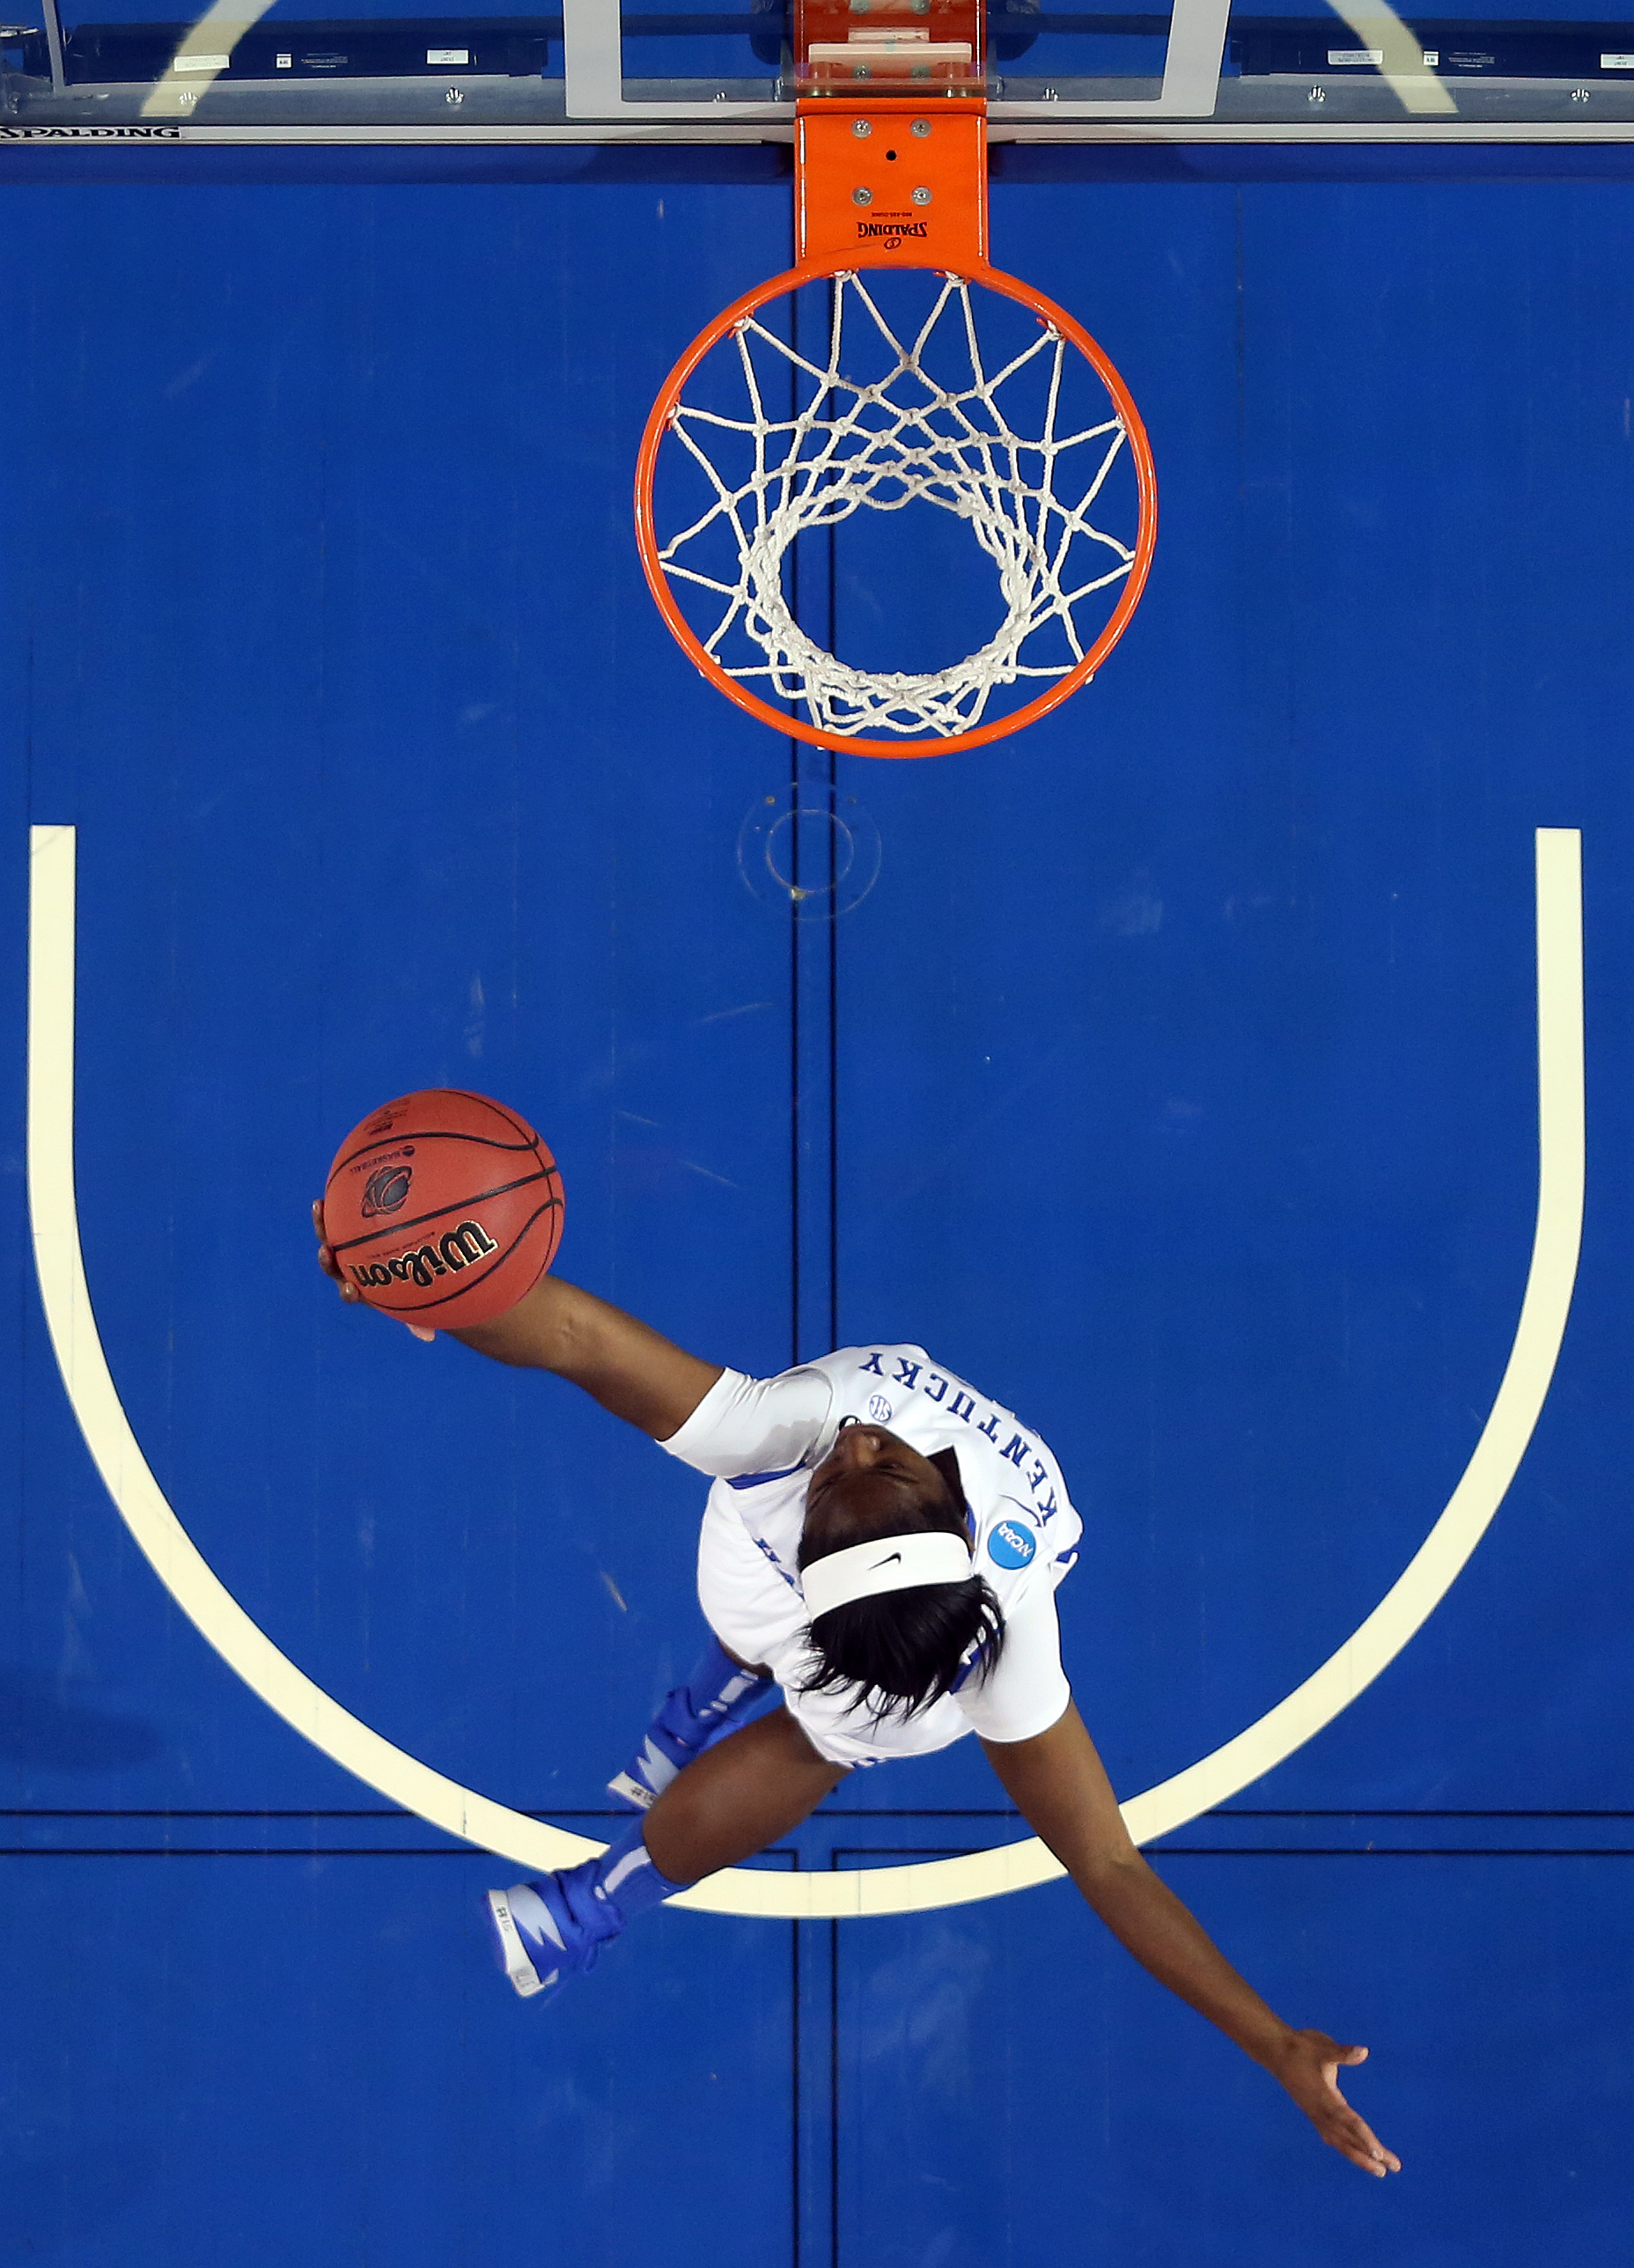 UK_wrightst_wbball_ncaa_2014_031_bdh.JPG